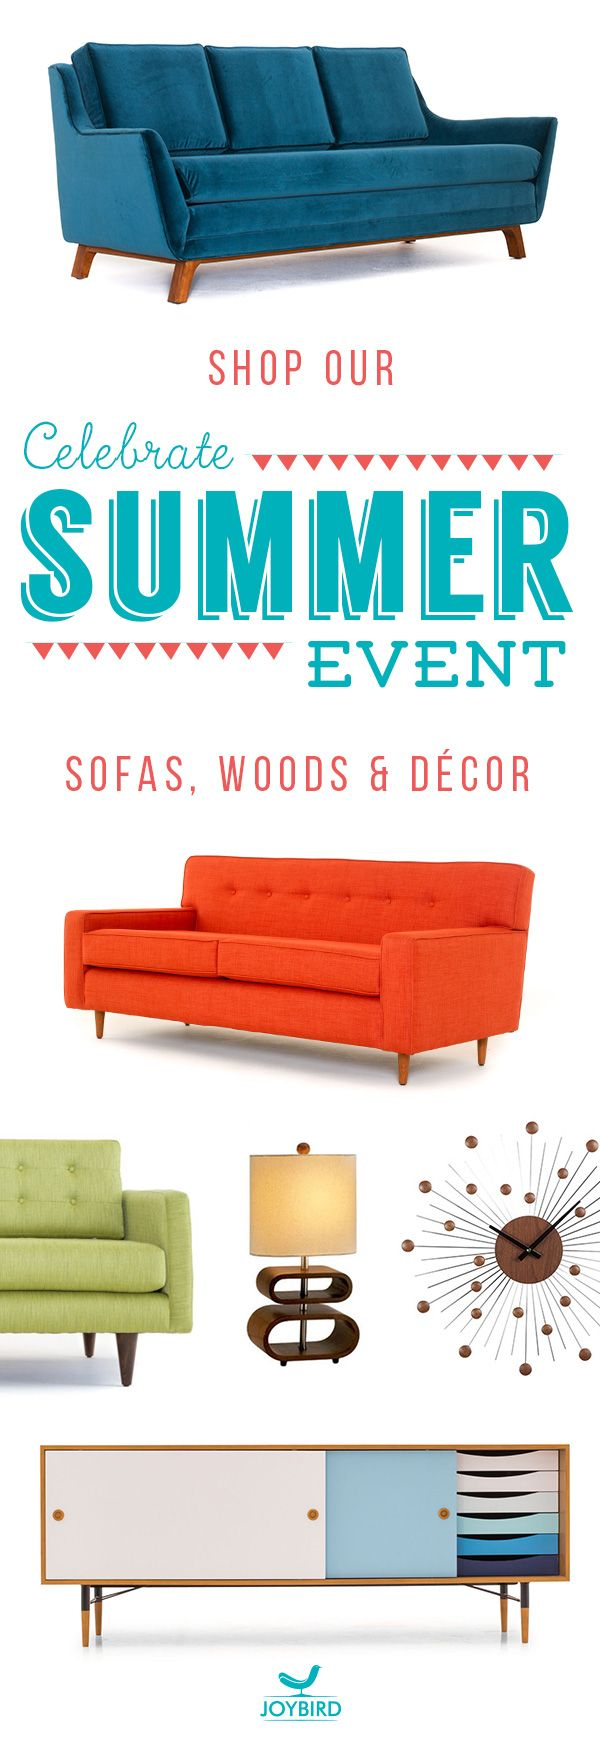 Why Be Generic When You Can Stand Out With Mid Century Modern Furniture  From Joybird? Take Off Sofas, Wood Items, And Decor Right Now During Our  Summer Sale ...